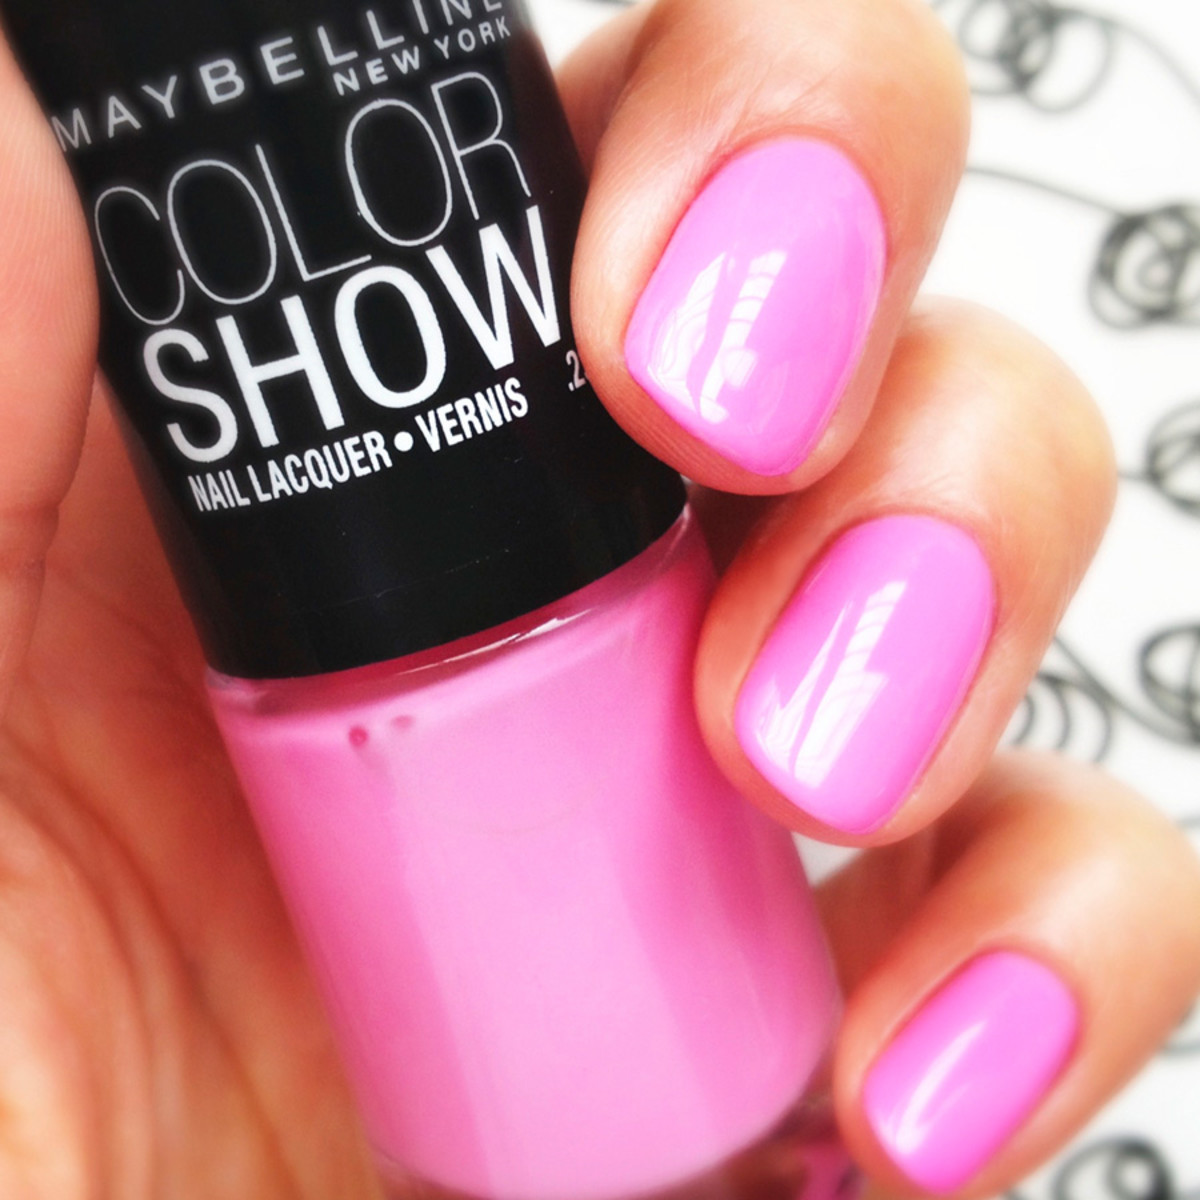 Maybelline Color Show - Chiffon Chic